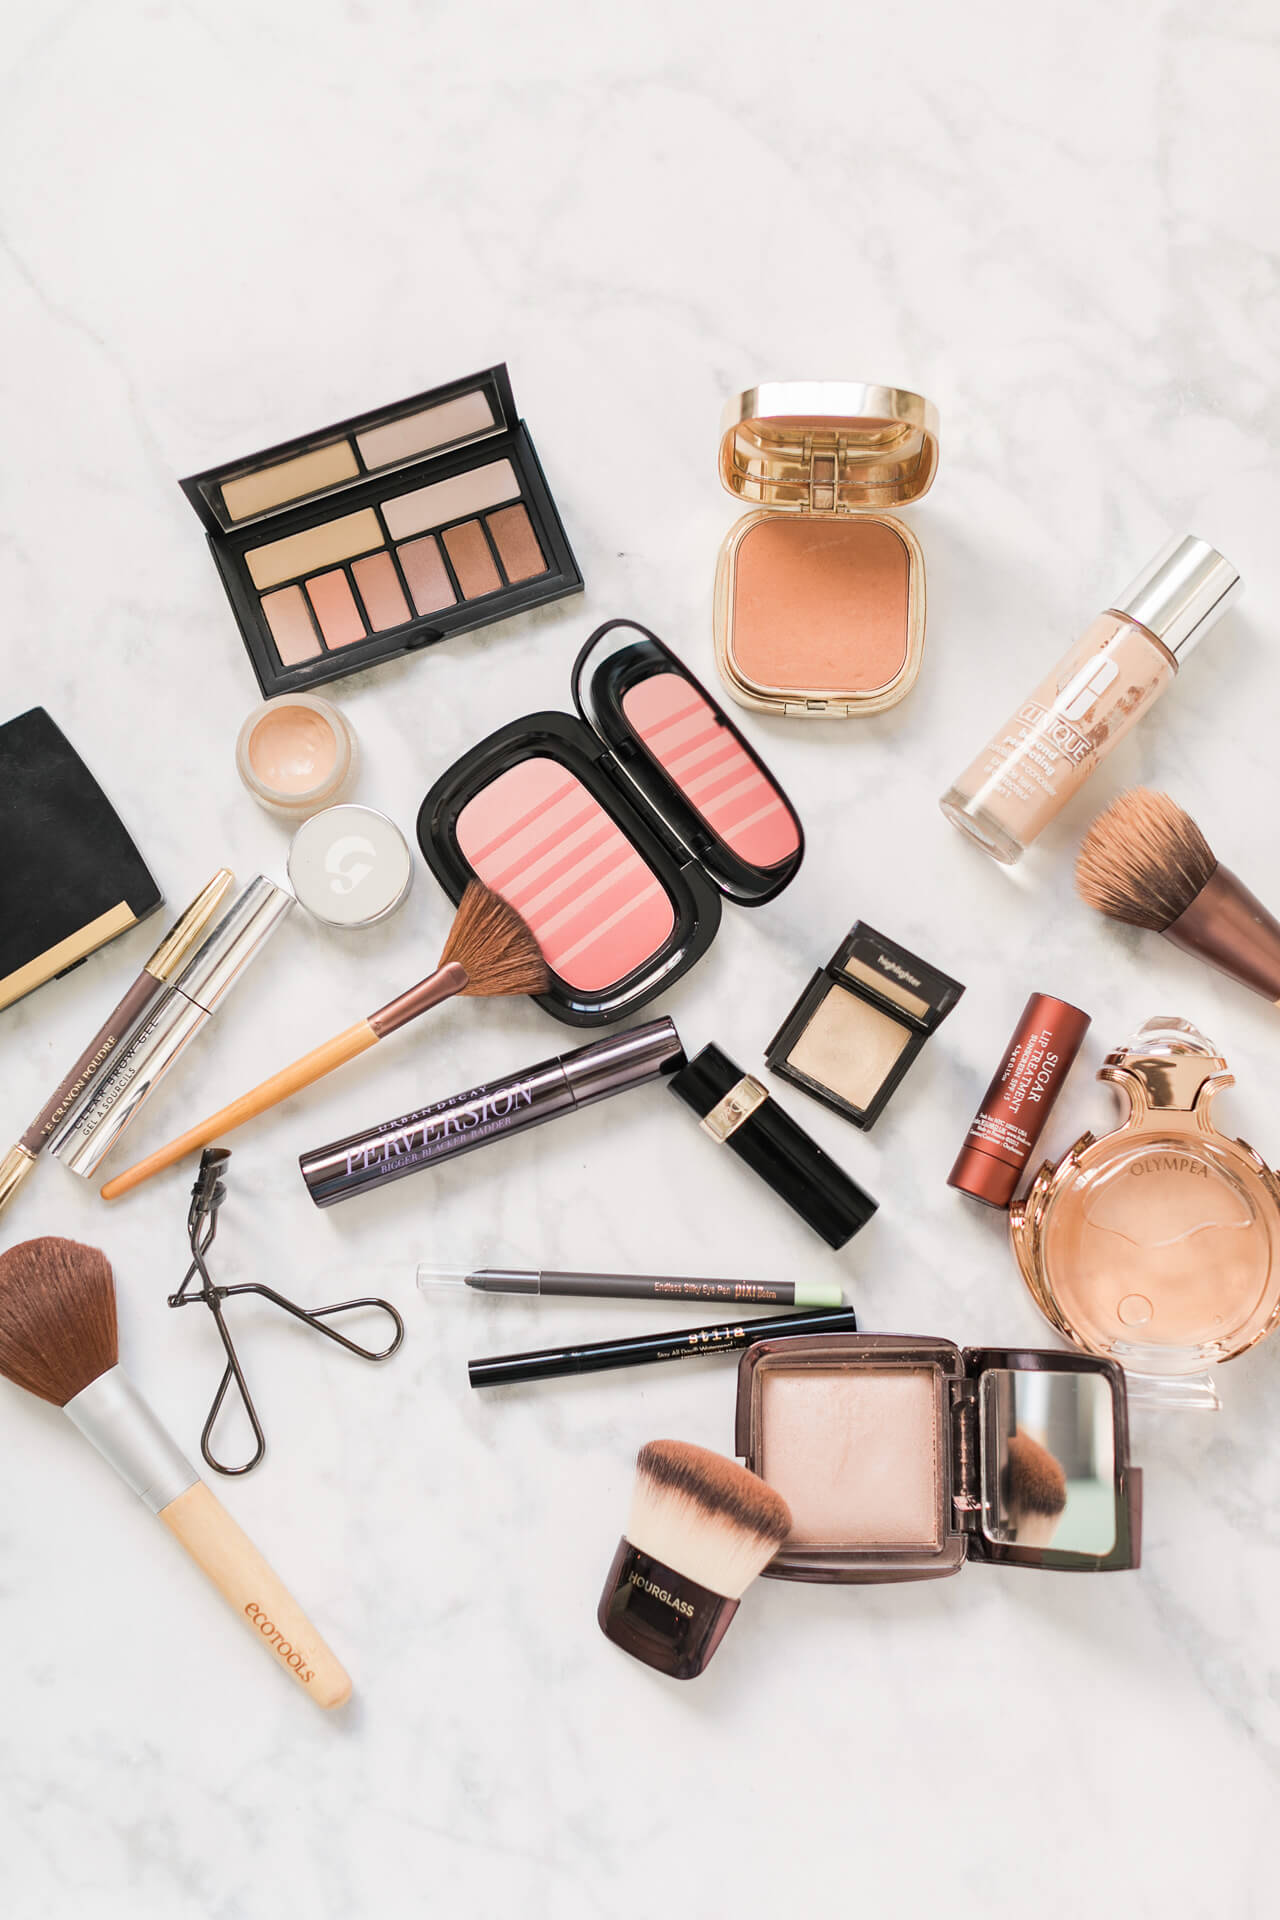 My Favorite Beauty Products for my Everyday Beauty Routine